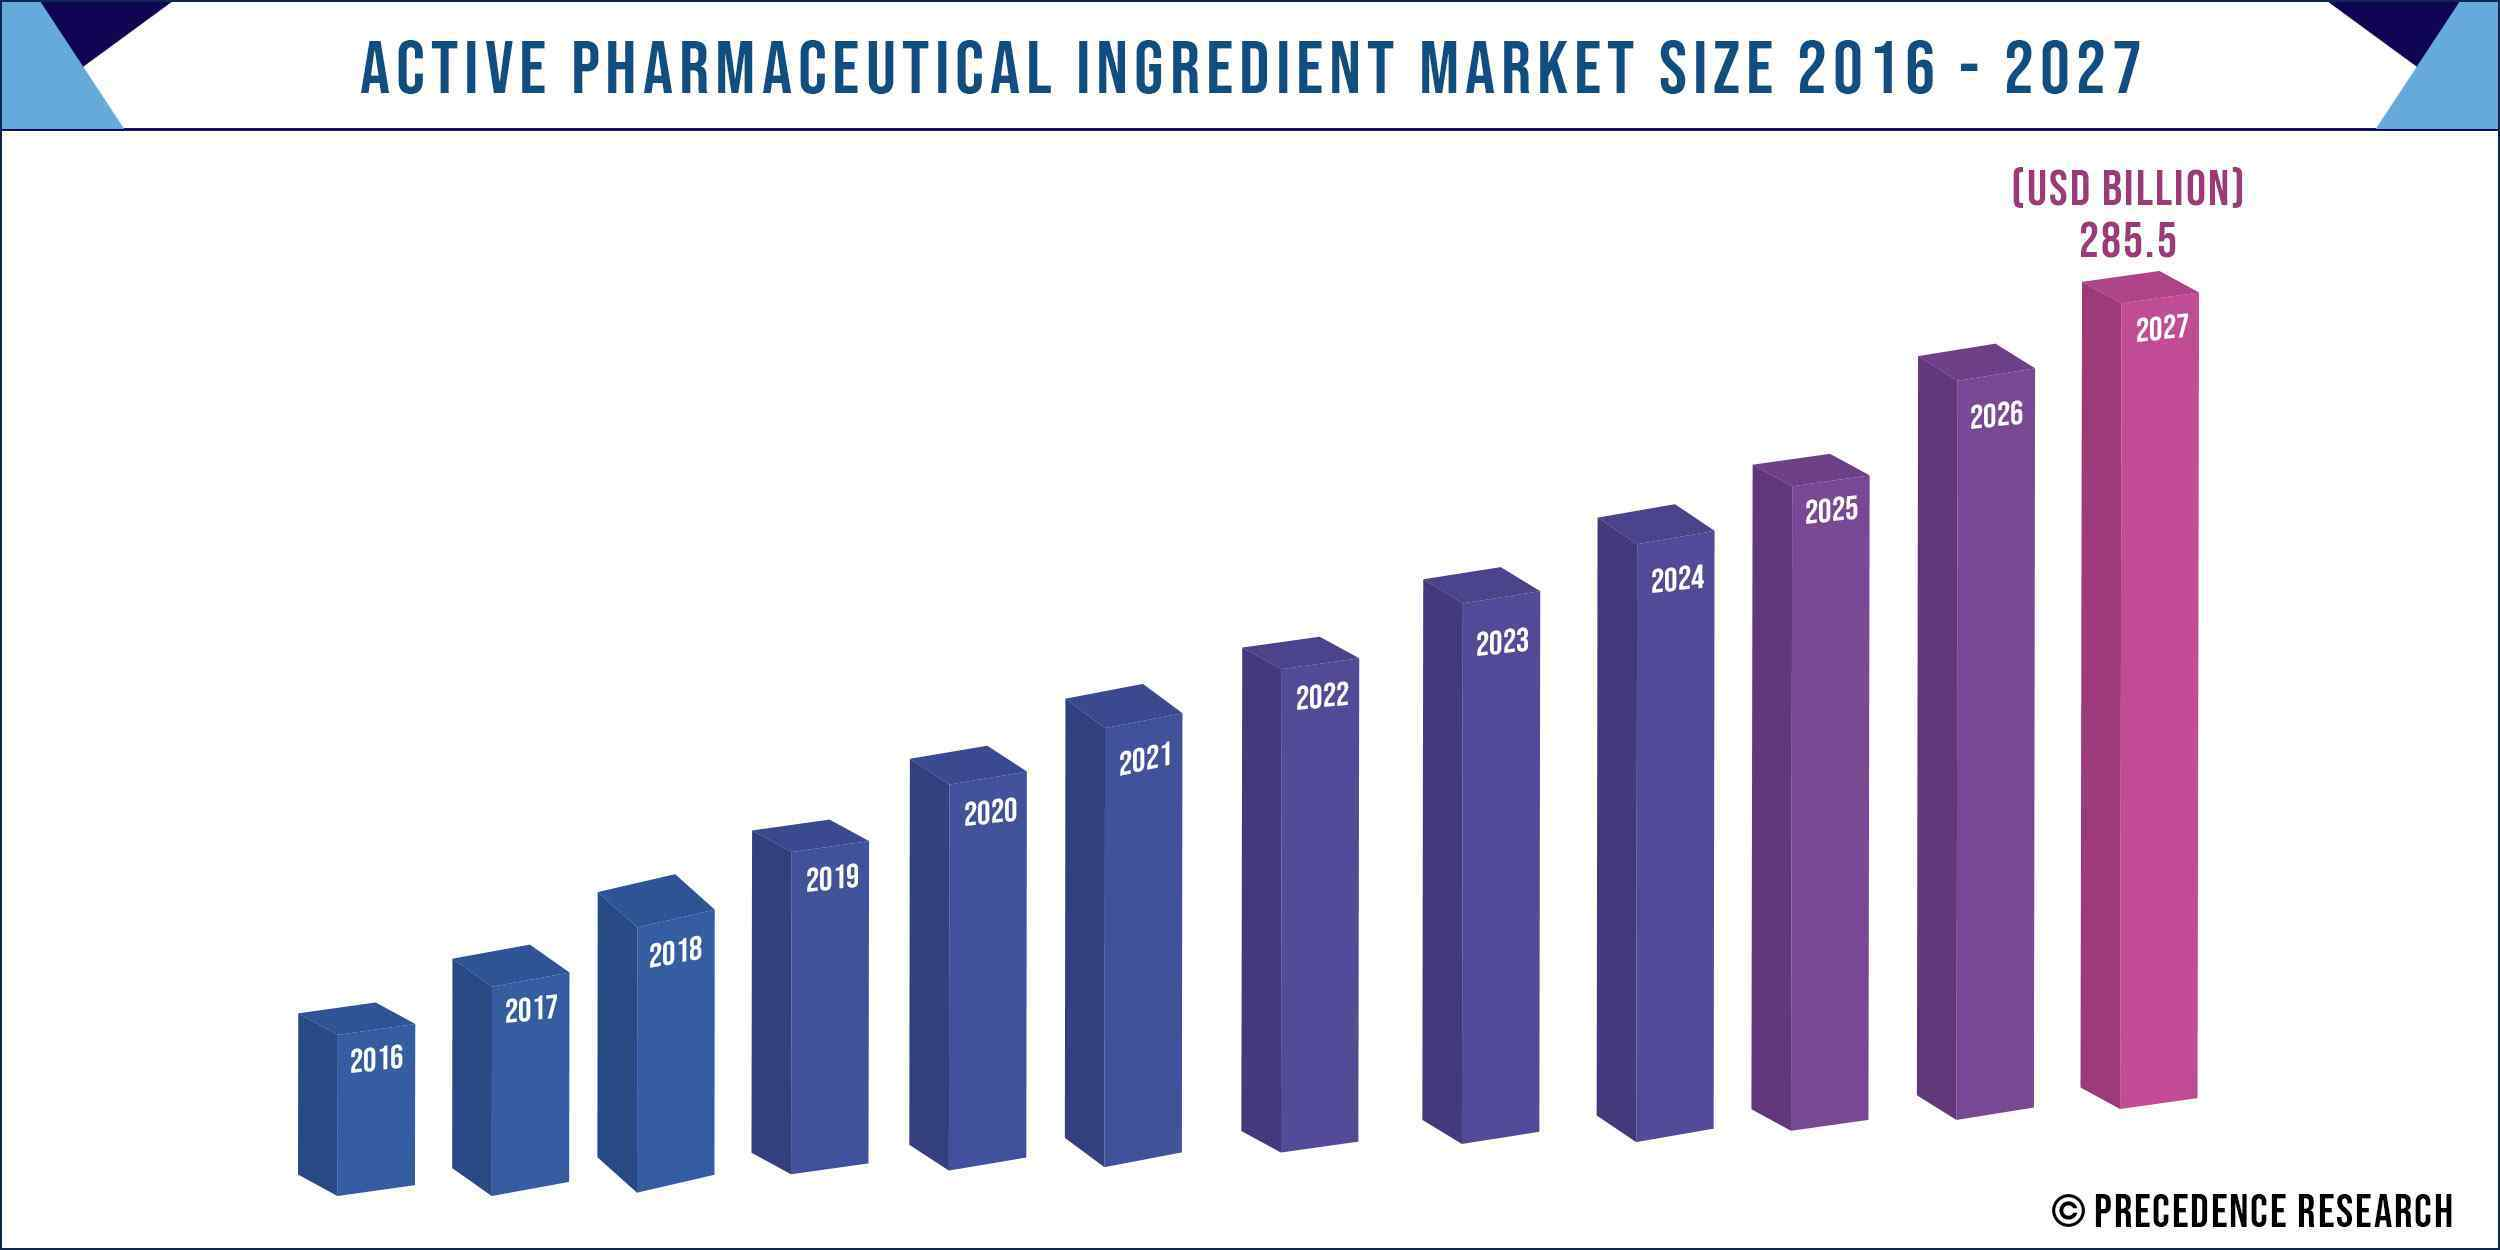 Active Pharmaceutical Ingredient Market Size 2016 to 2027